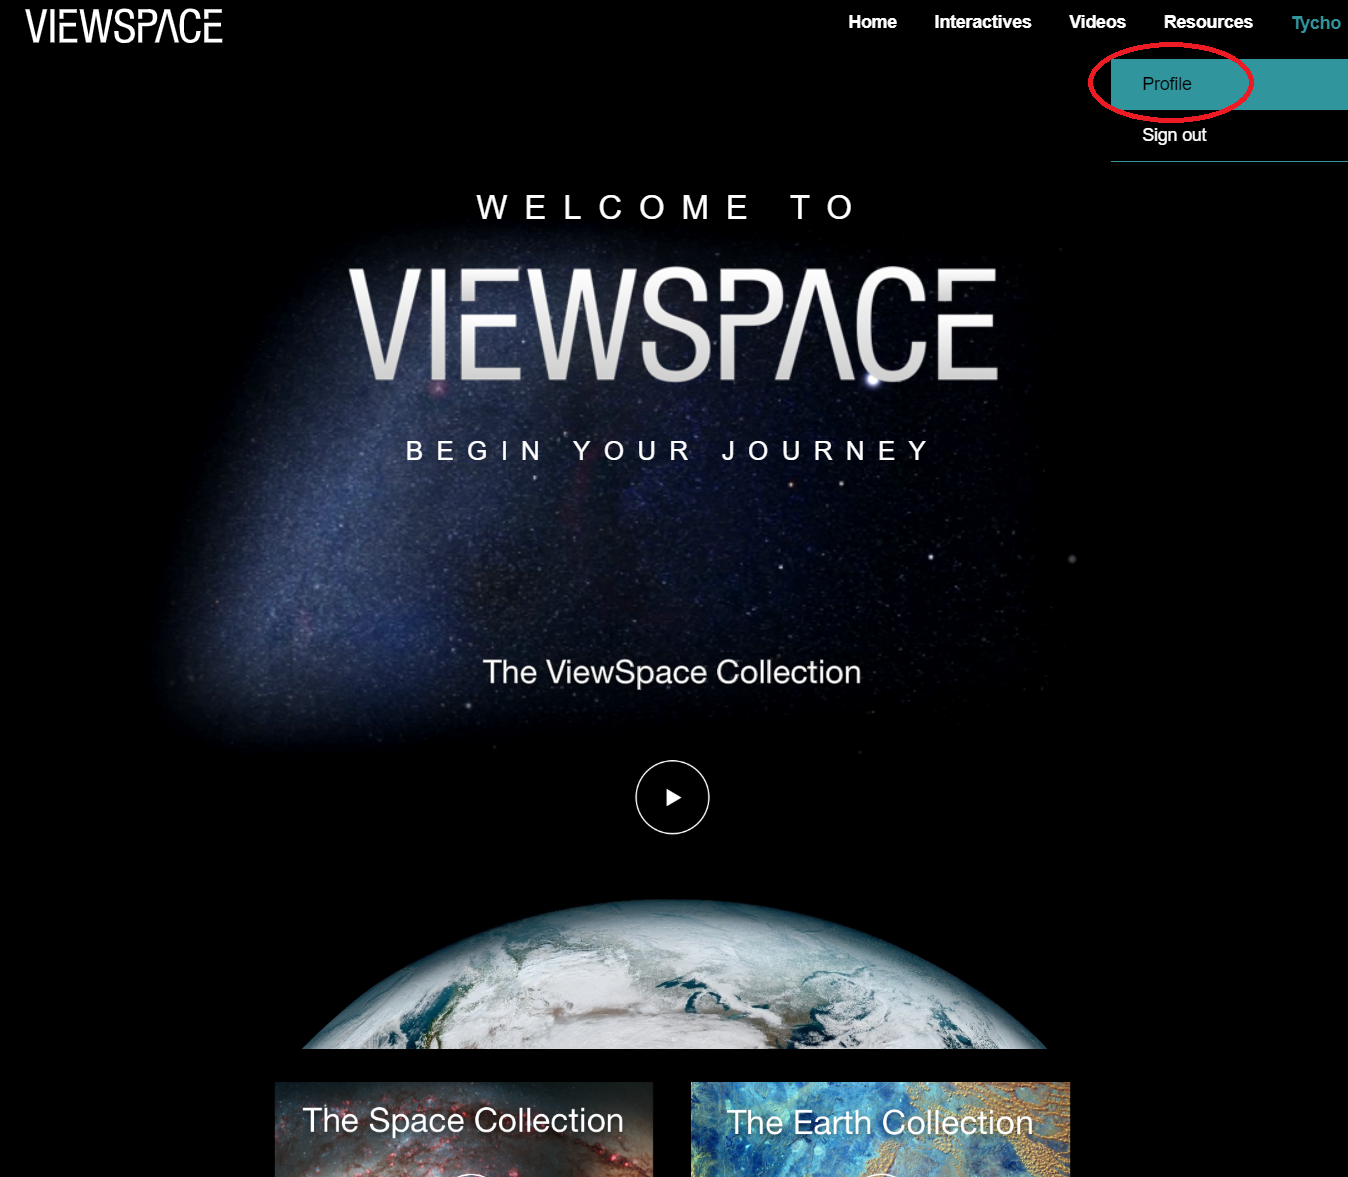 Screenshot showing the ViewSpace Video Collection landing page with the user name.